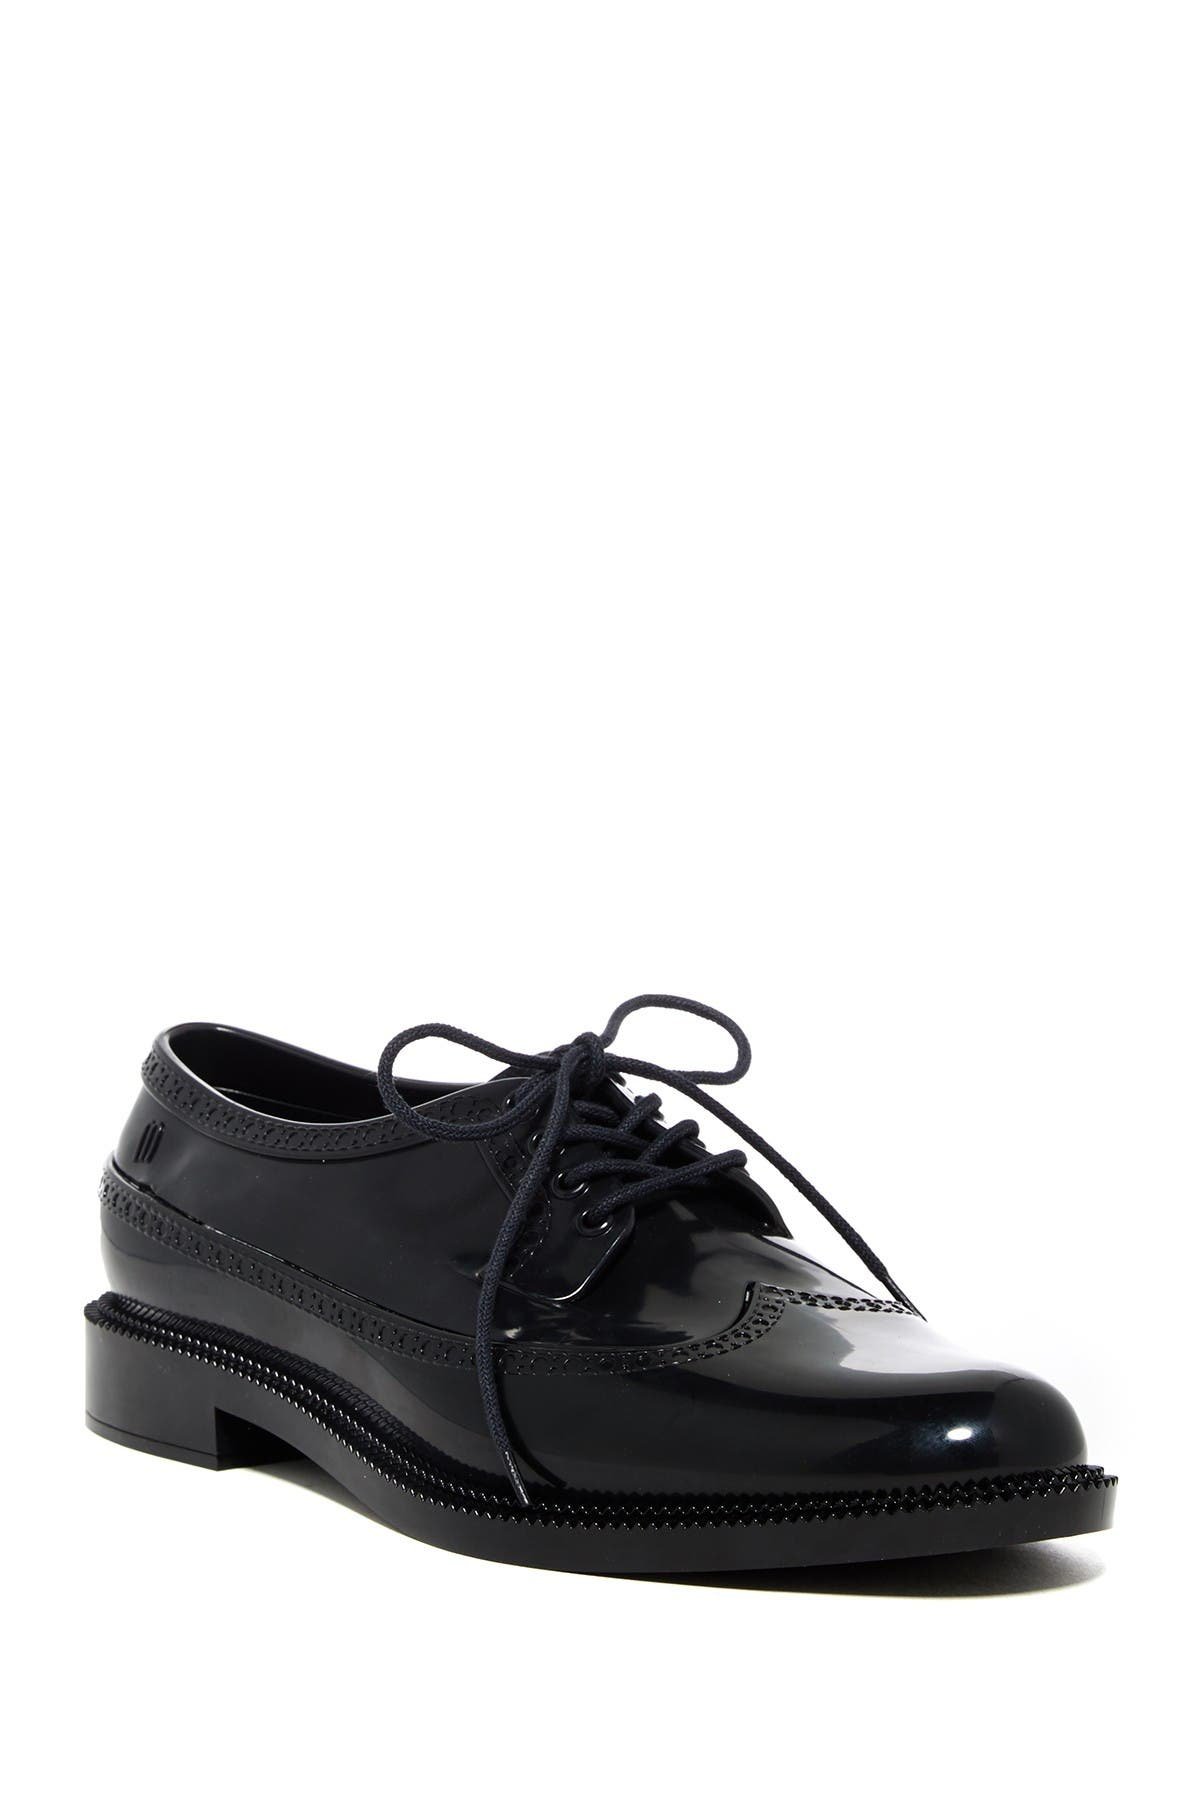 Image of Melissa Classic Brogue Jelly Oxford